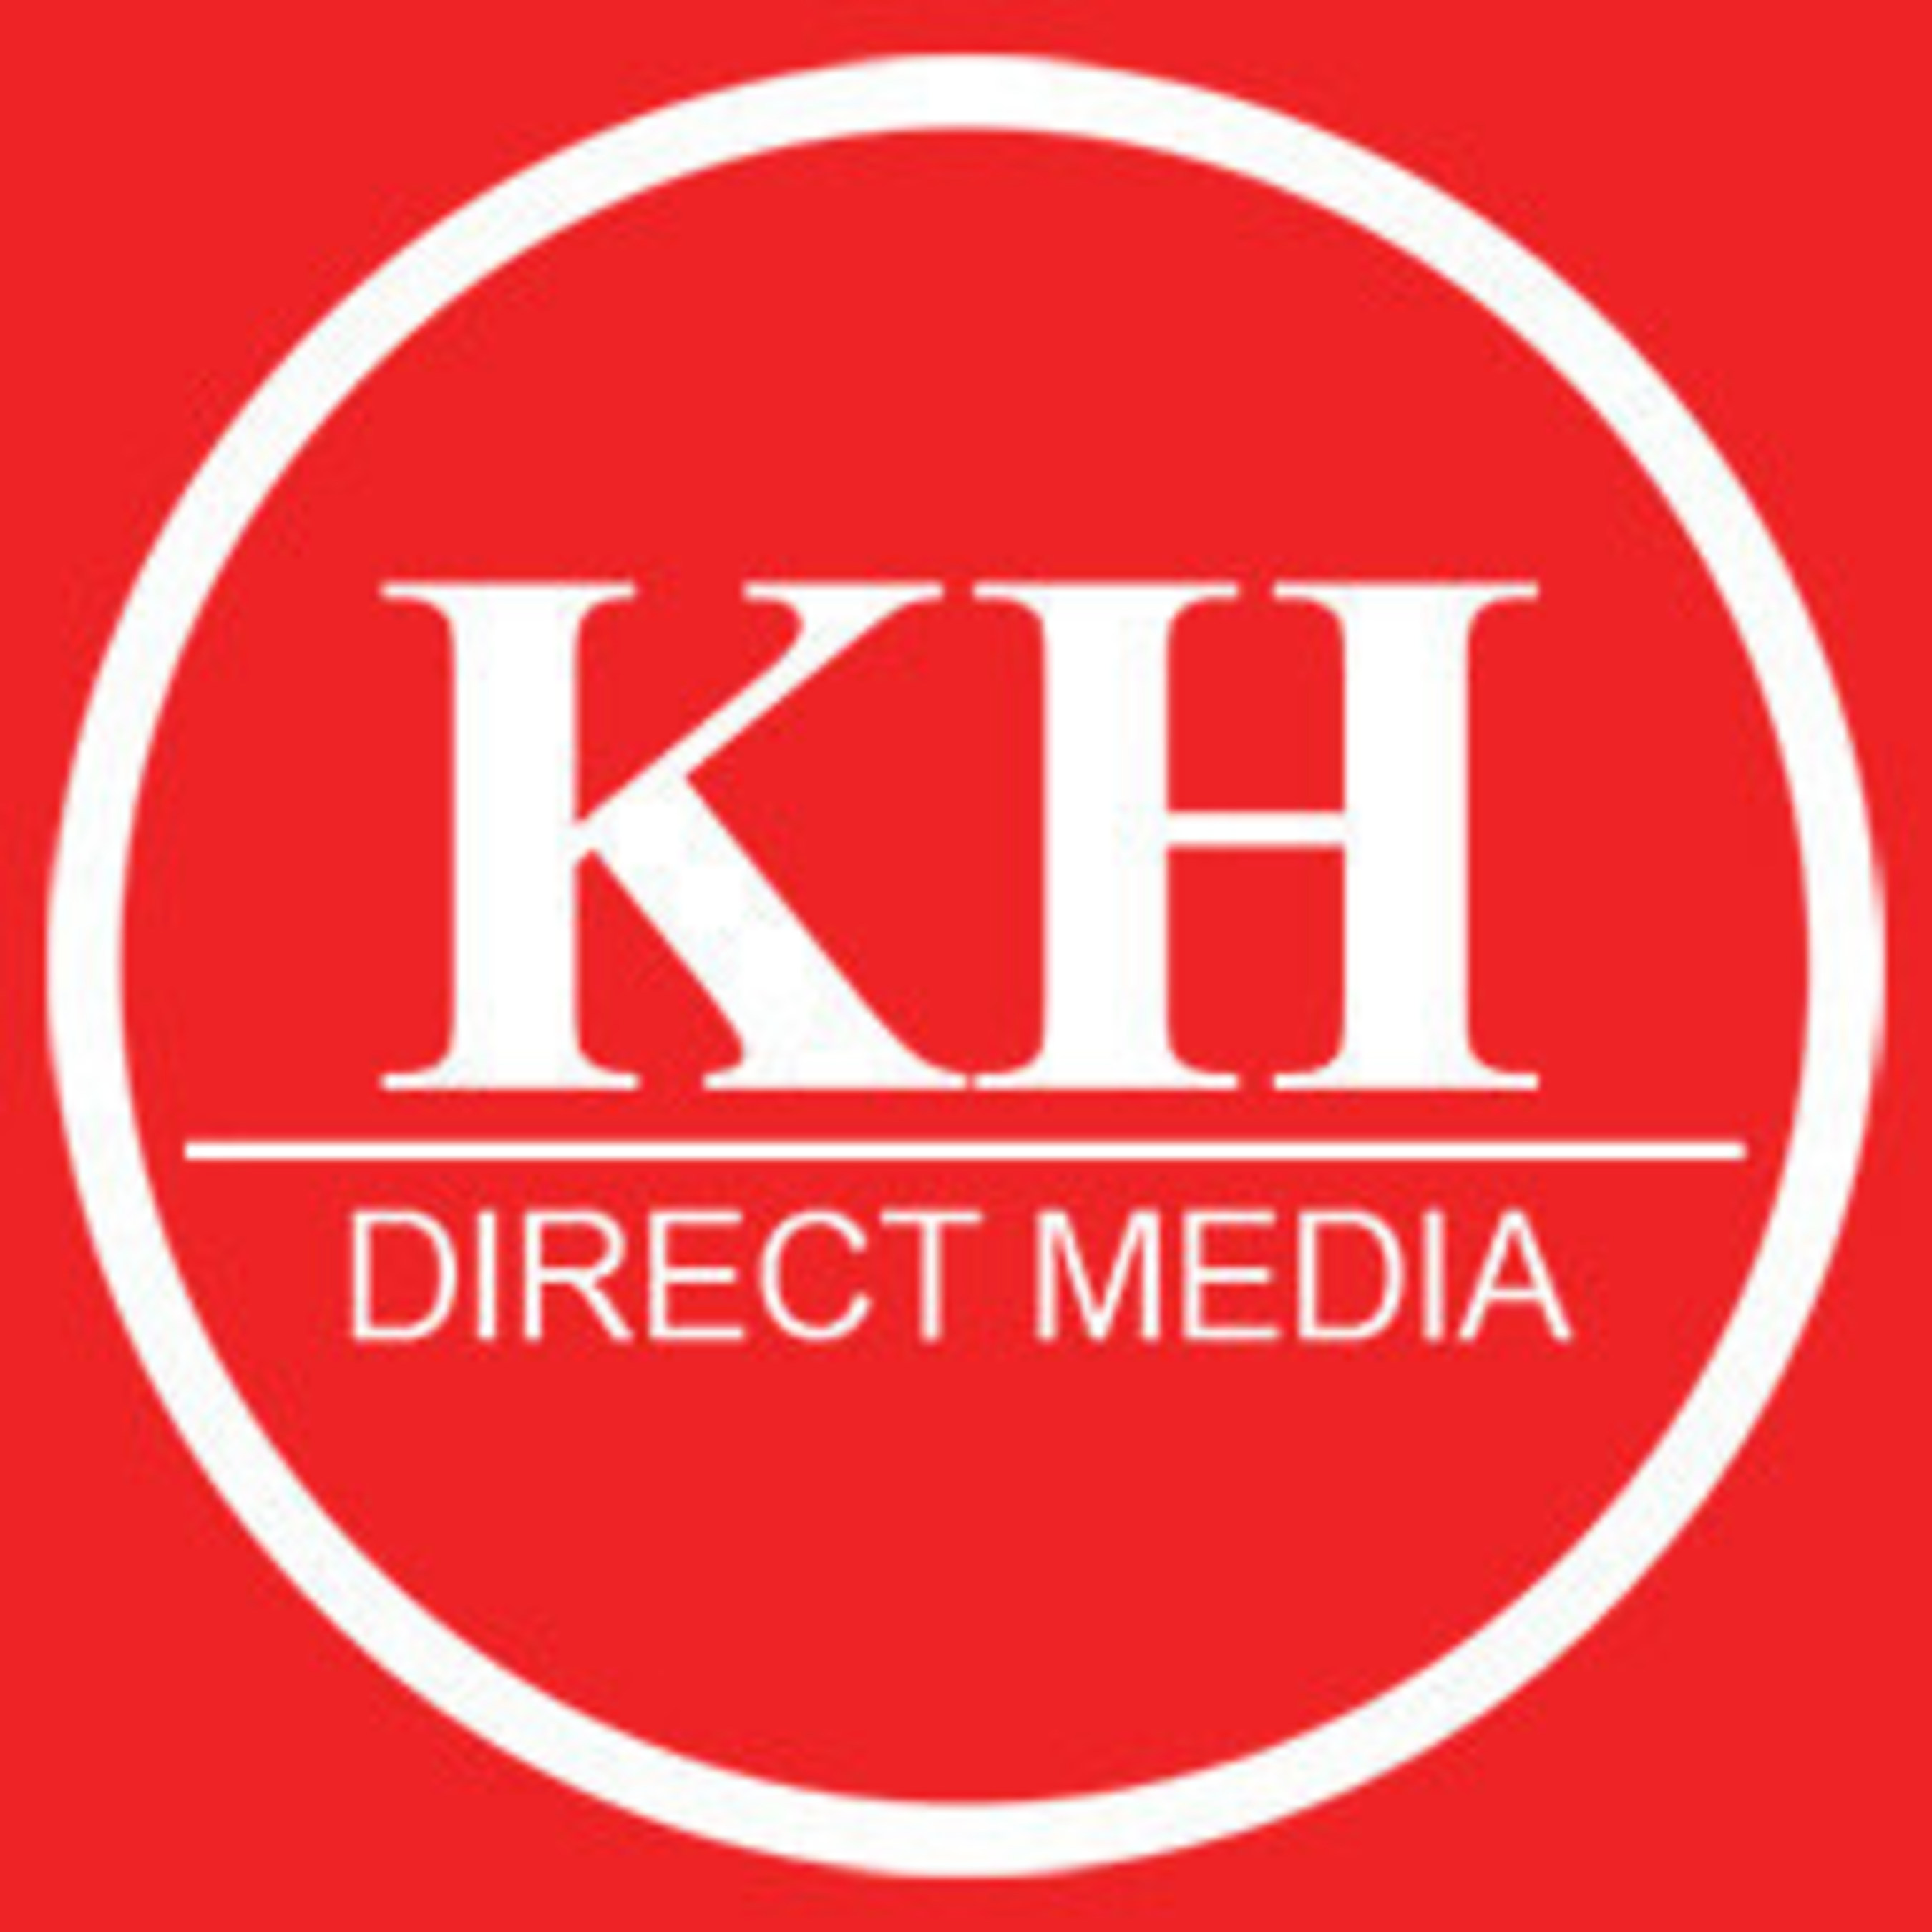 KH Direct Media Features Guidelines for Inventory Control